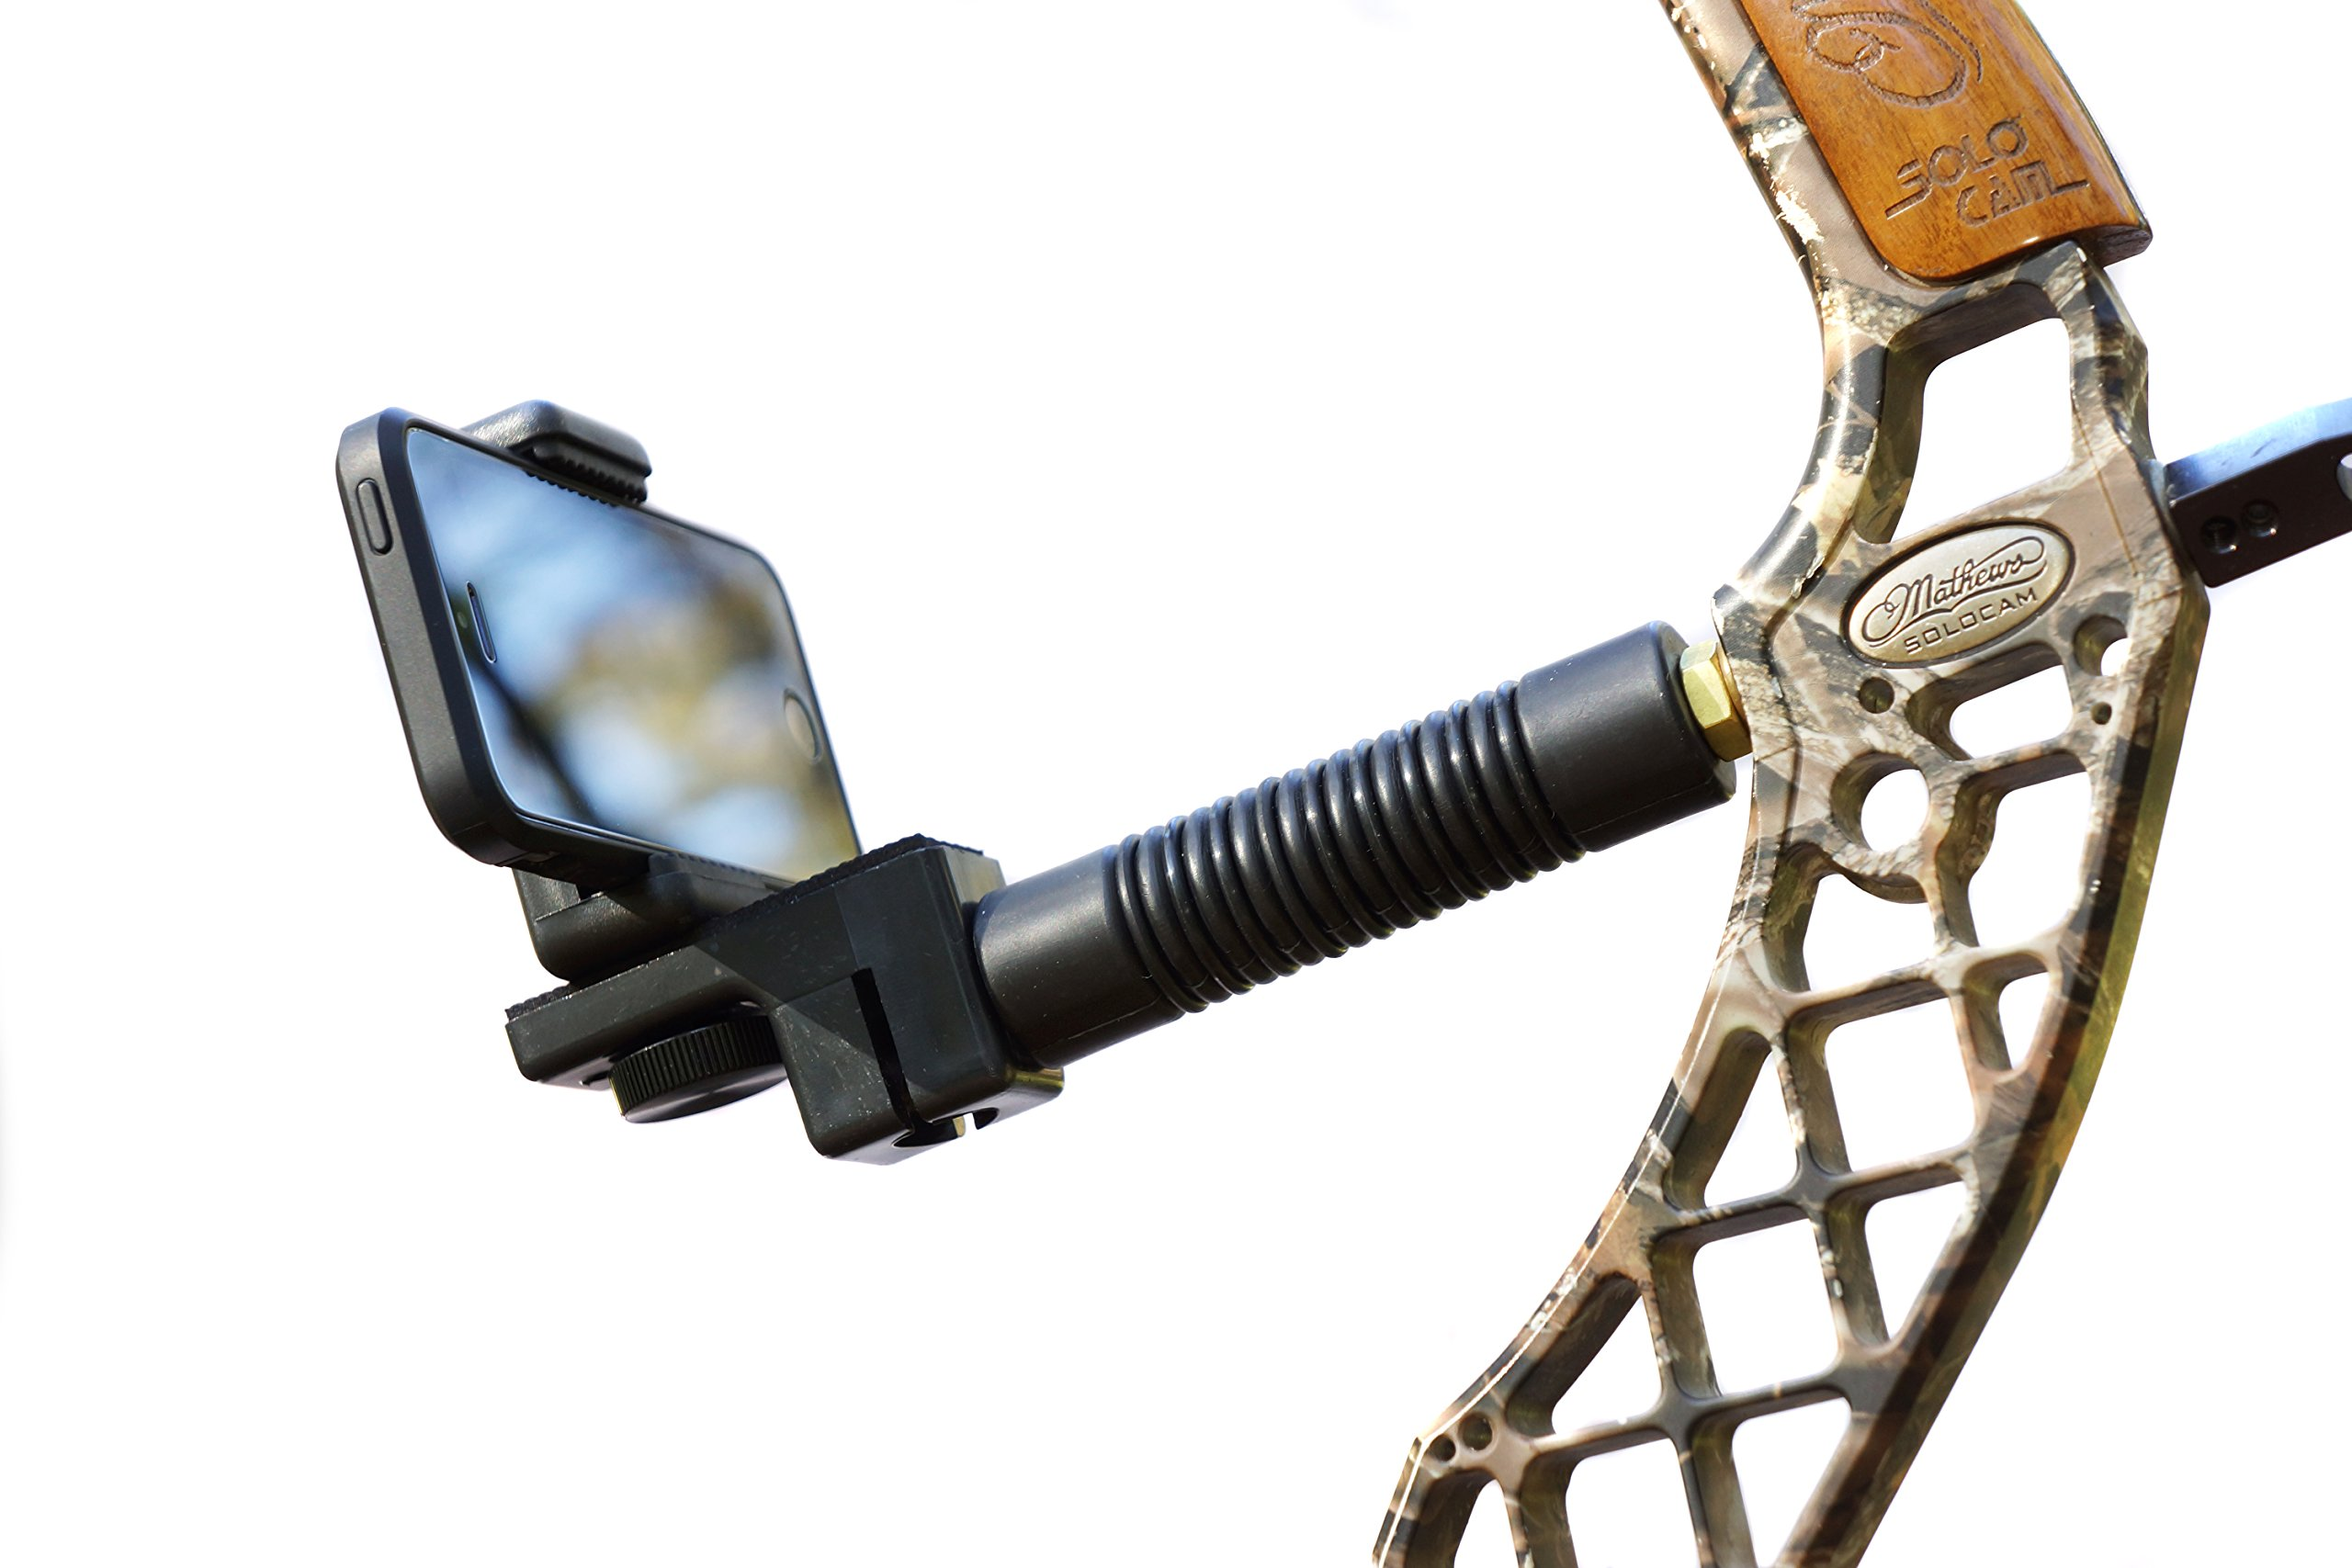 High Point Products Bow Camera Mount and Stabilizer; For Hunting, Archery; Attach Smartphone, iPhone, Nexus, Android, Samsung Htc, Lg, Motorola, GoPro, Standard Camera (Black) by High Point Products